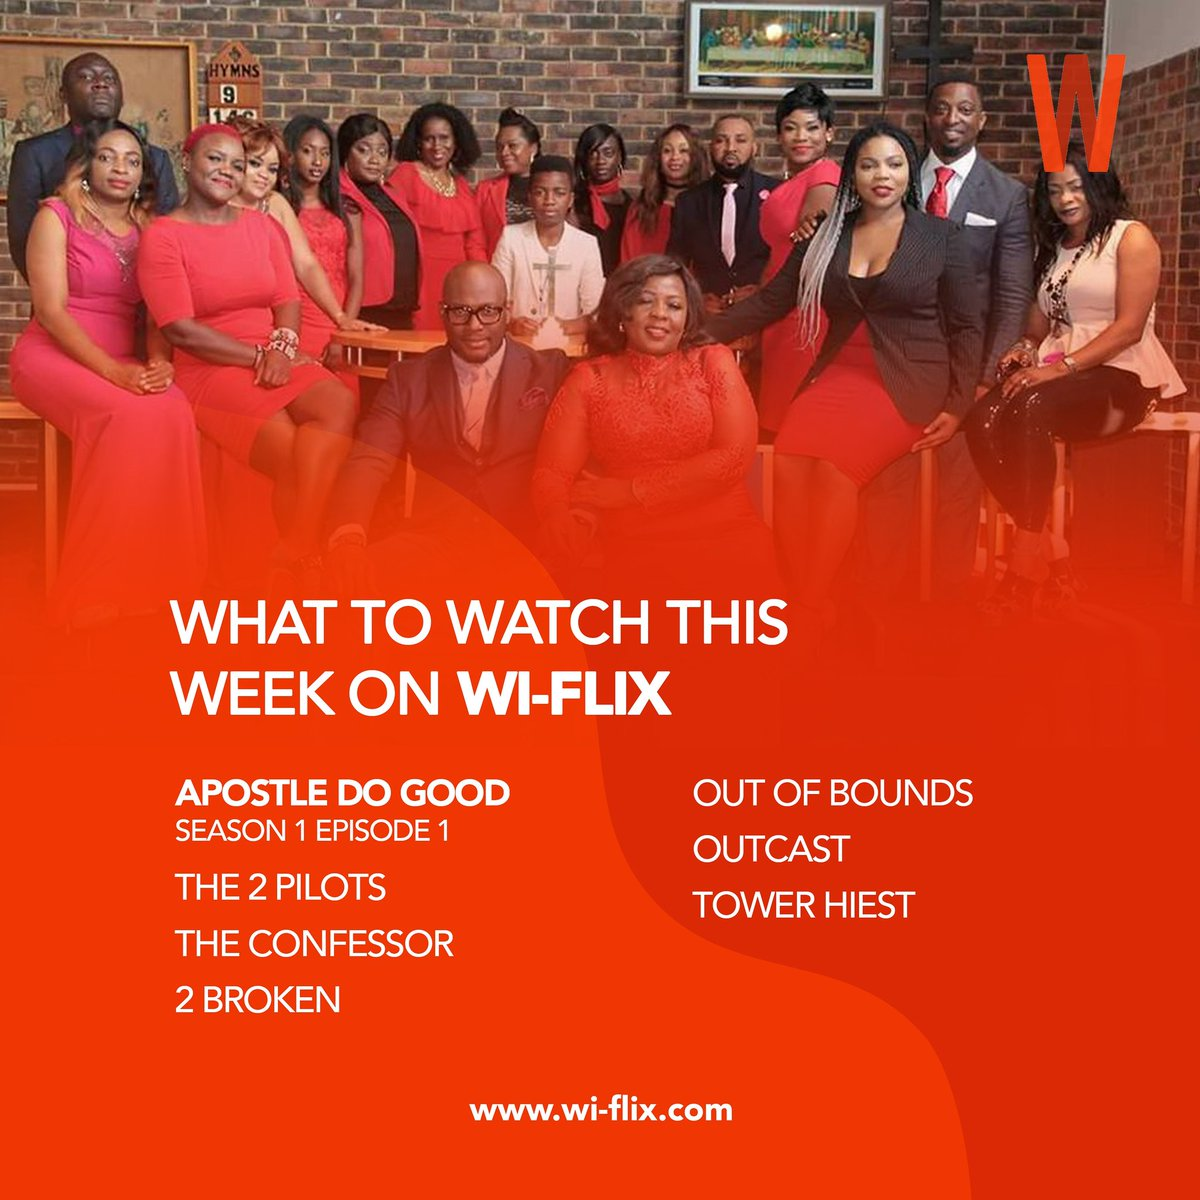 This week on @wi_flix   #watch #entertainment #movies #film #drama #series https://t.co/kUo1BE3DMa